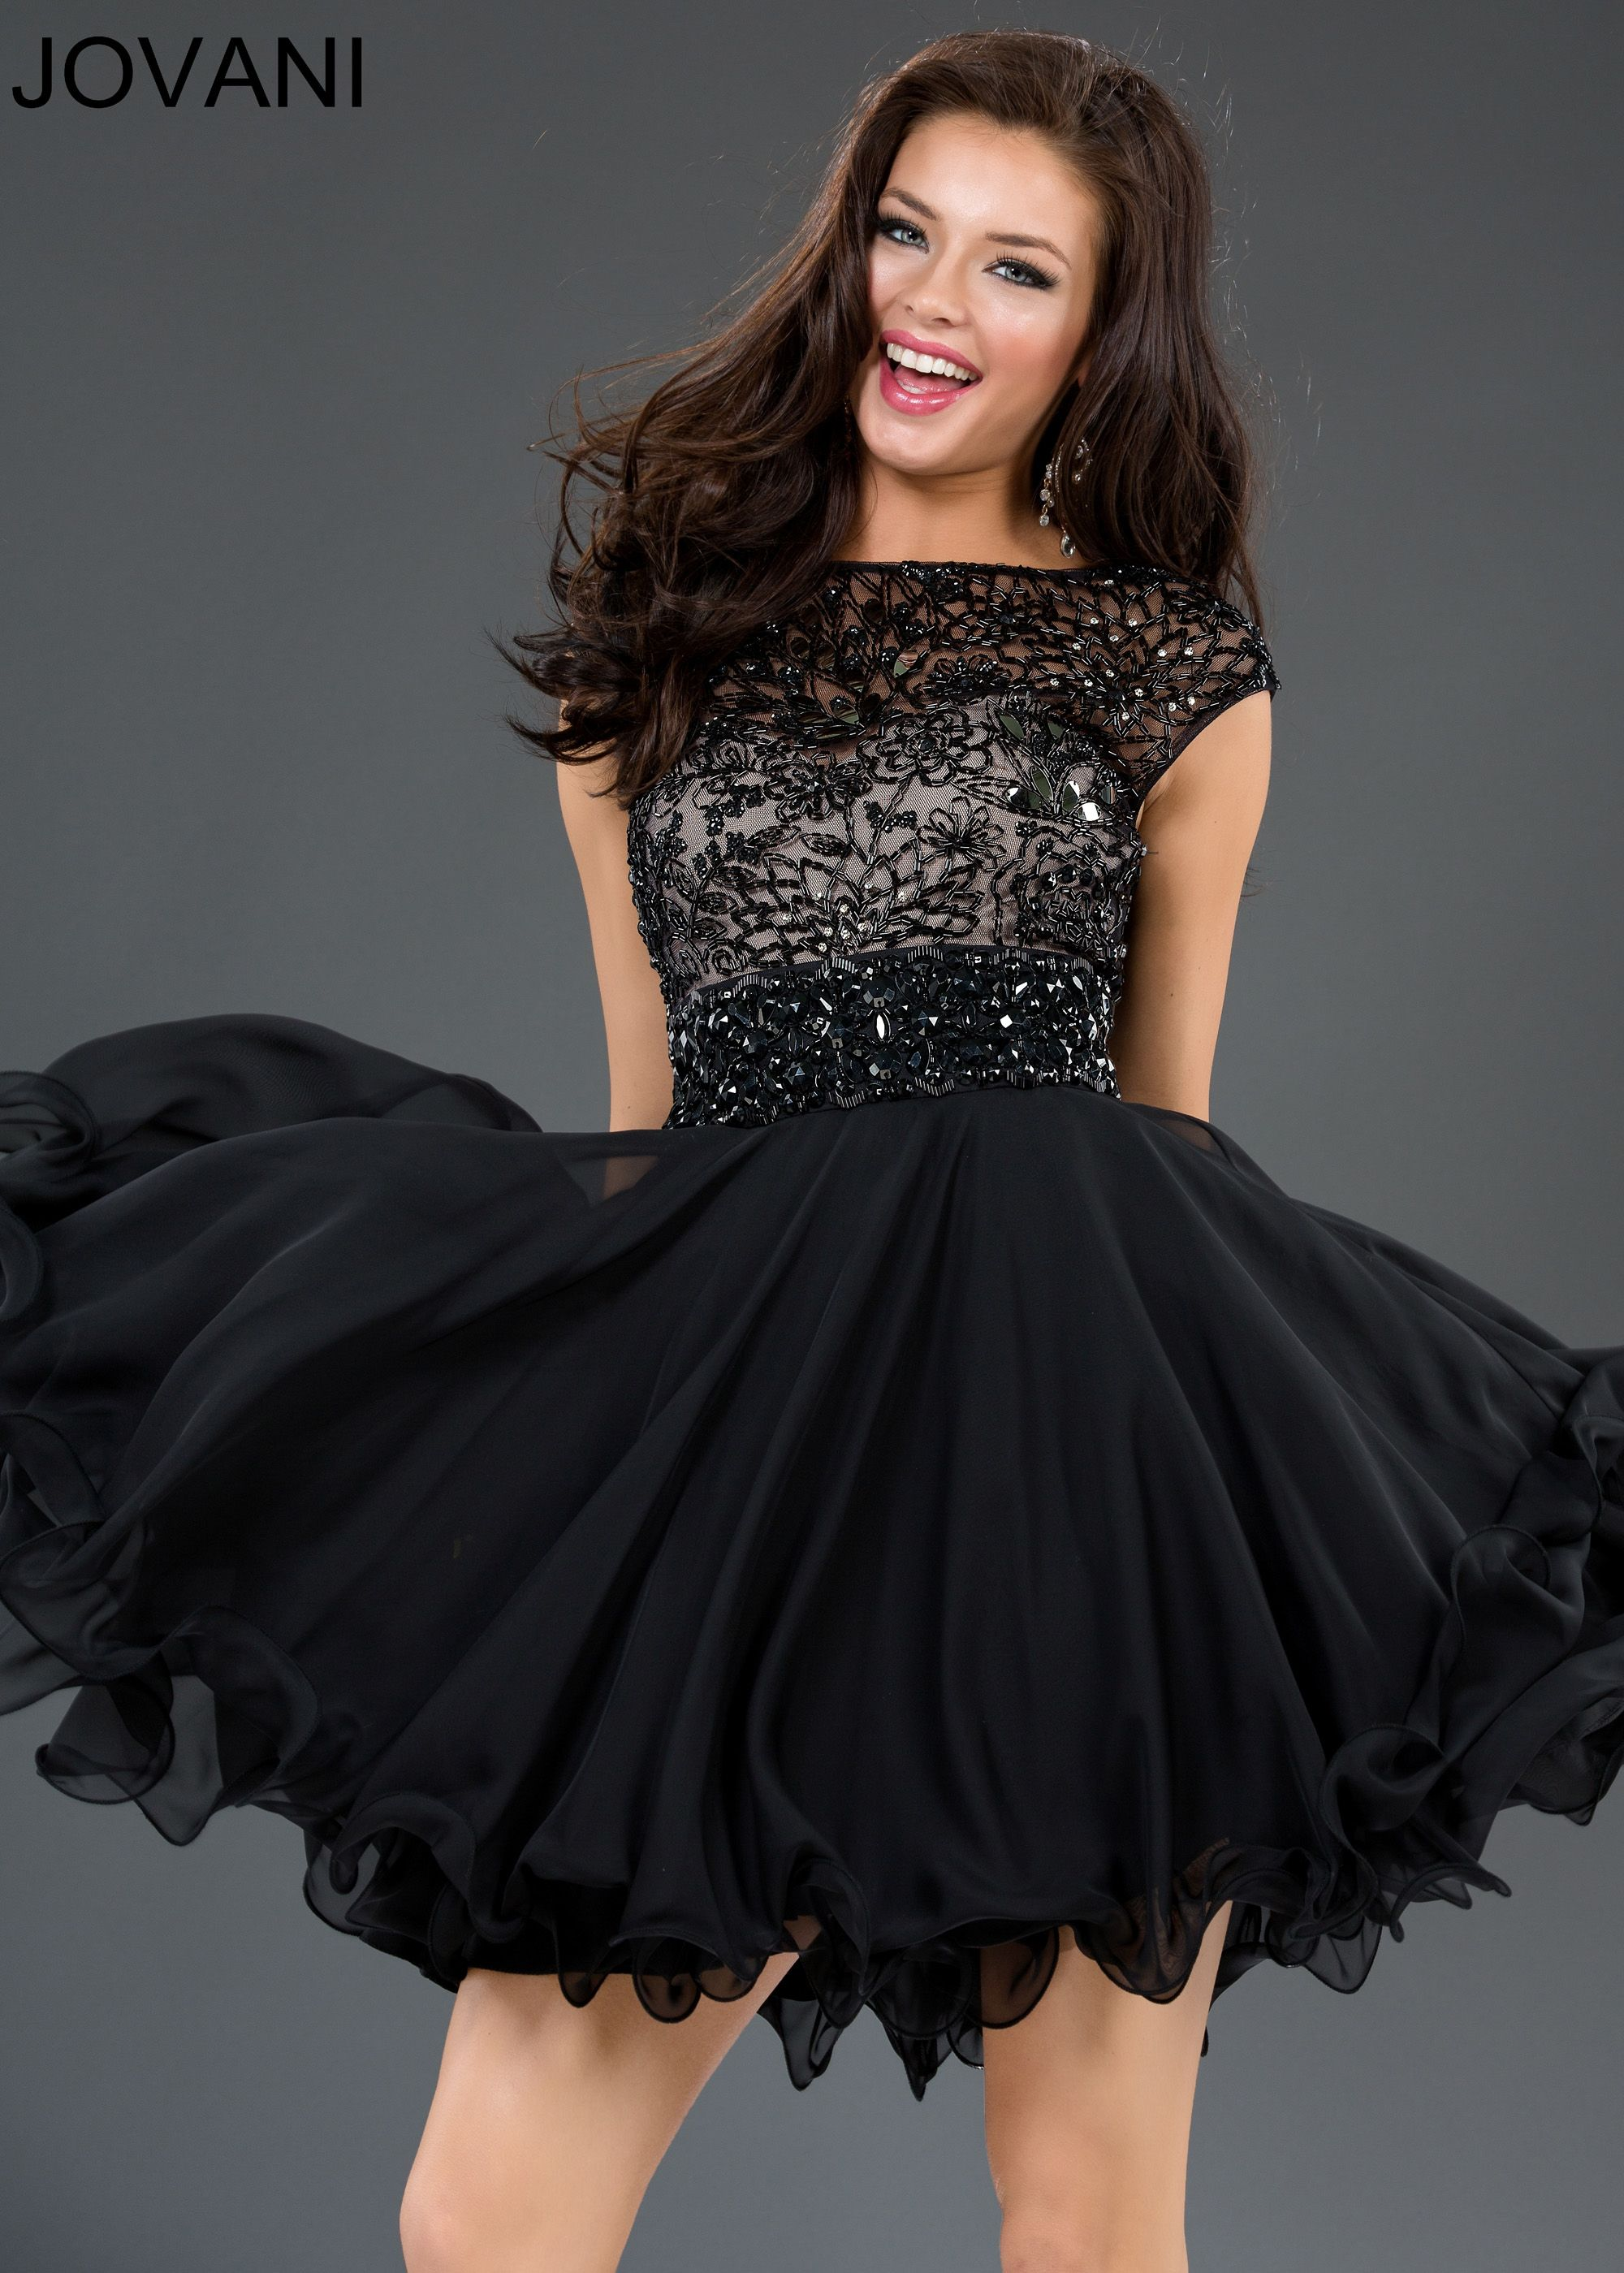 cc2781d1f95 Jovani 77894 - Black Sleeveless Short Homecoming Dresses Online ...